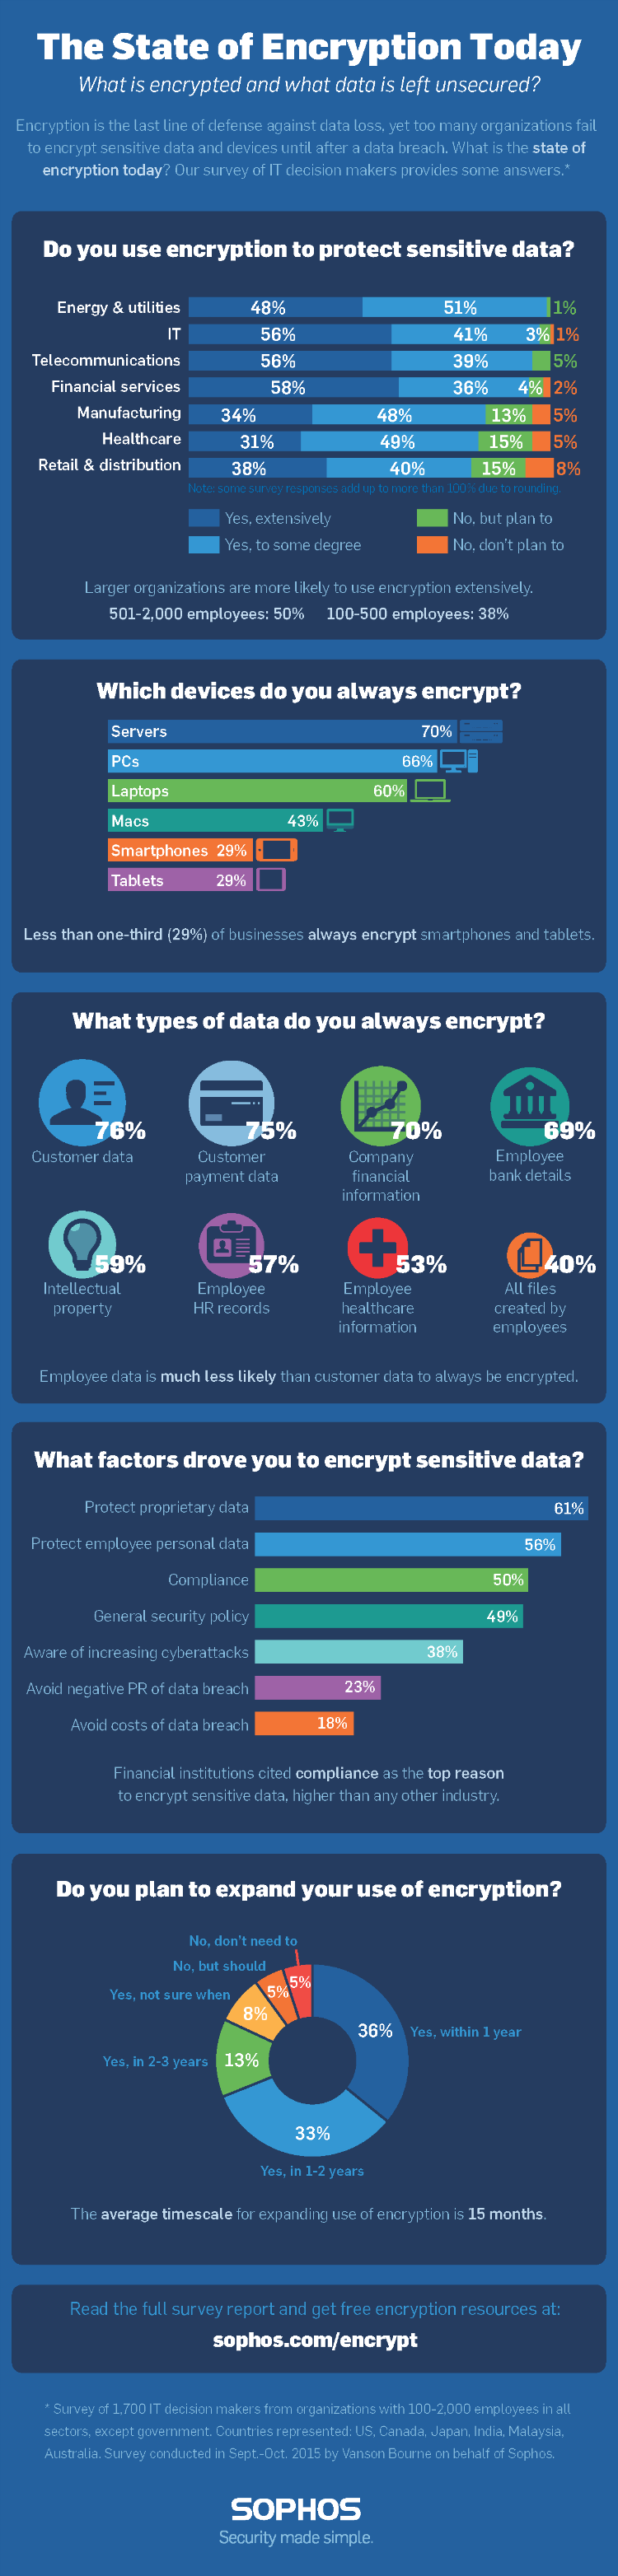 Sophos State of Encryption Infographic